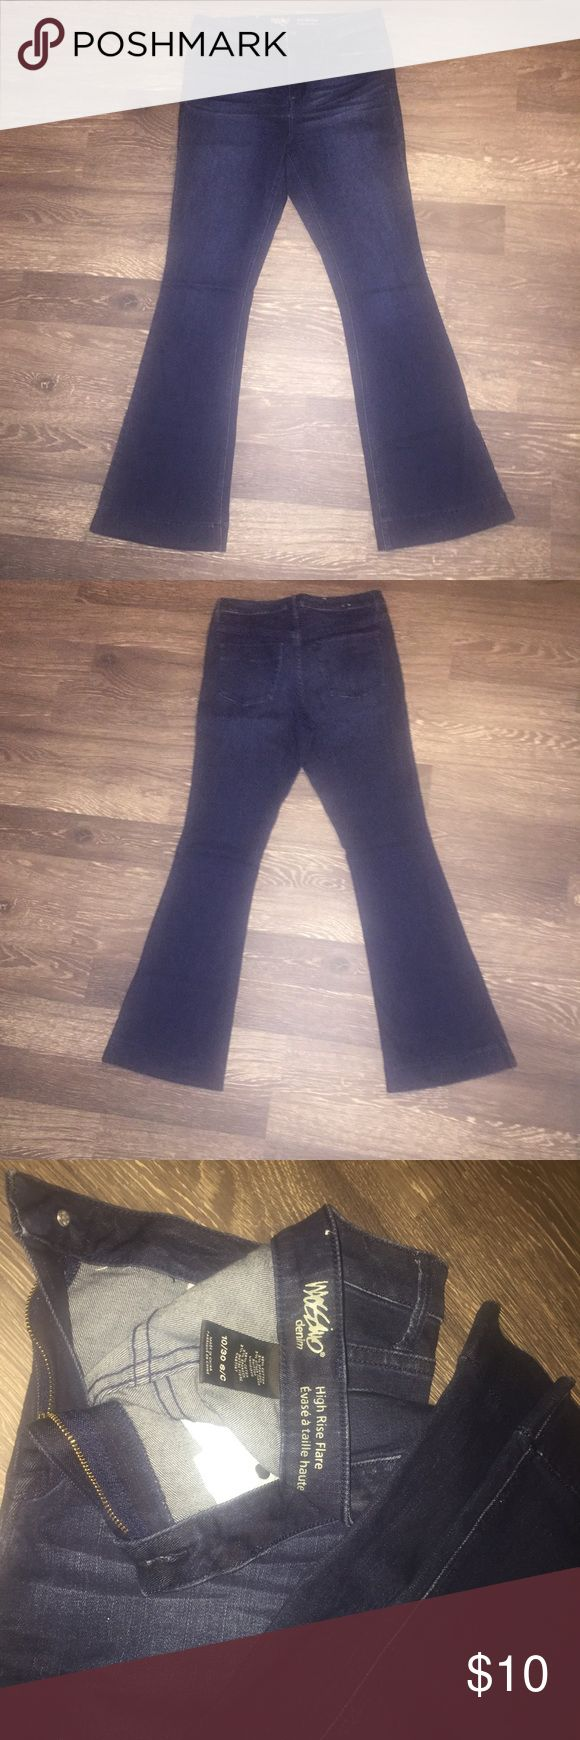 Dark denim flare leg jeans by Mossimo Dark denim flare legged jean. Worn once. Excellent condition. Mossimo Supply Co Jeans Flare & Wide Leg